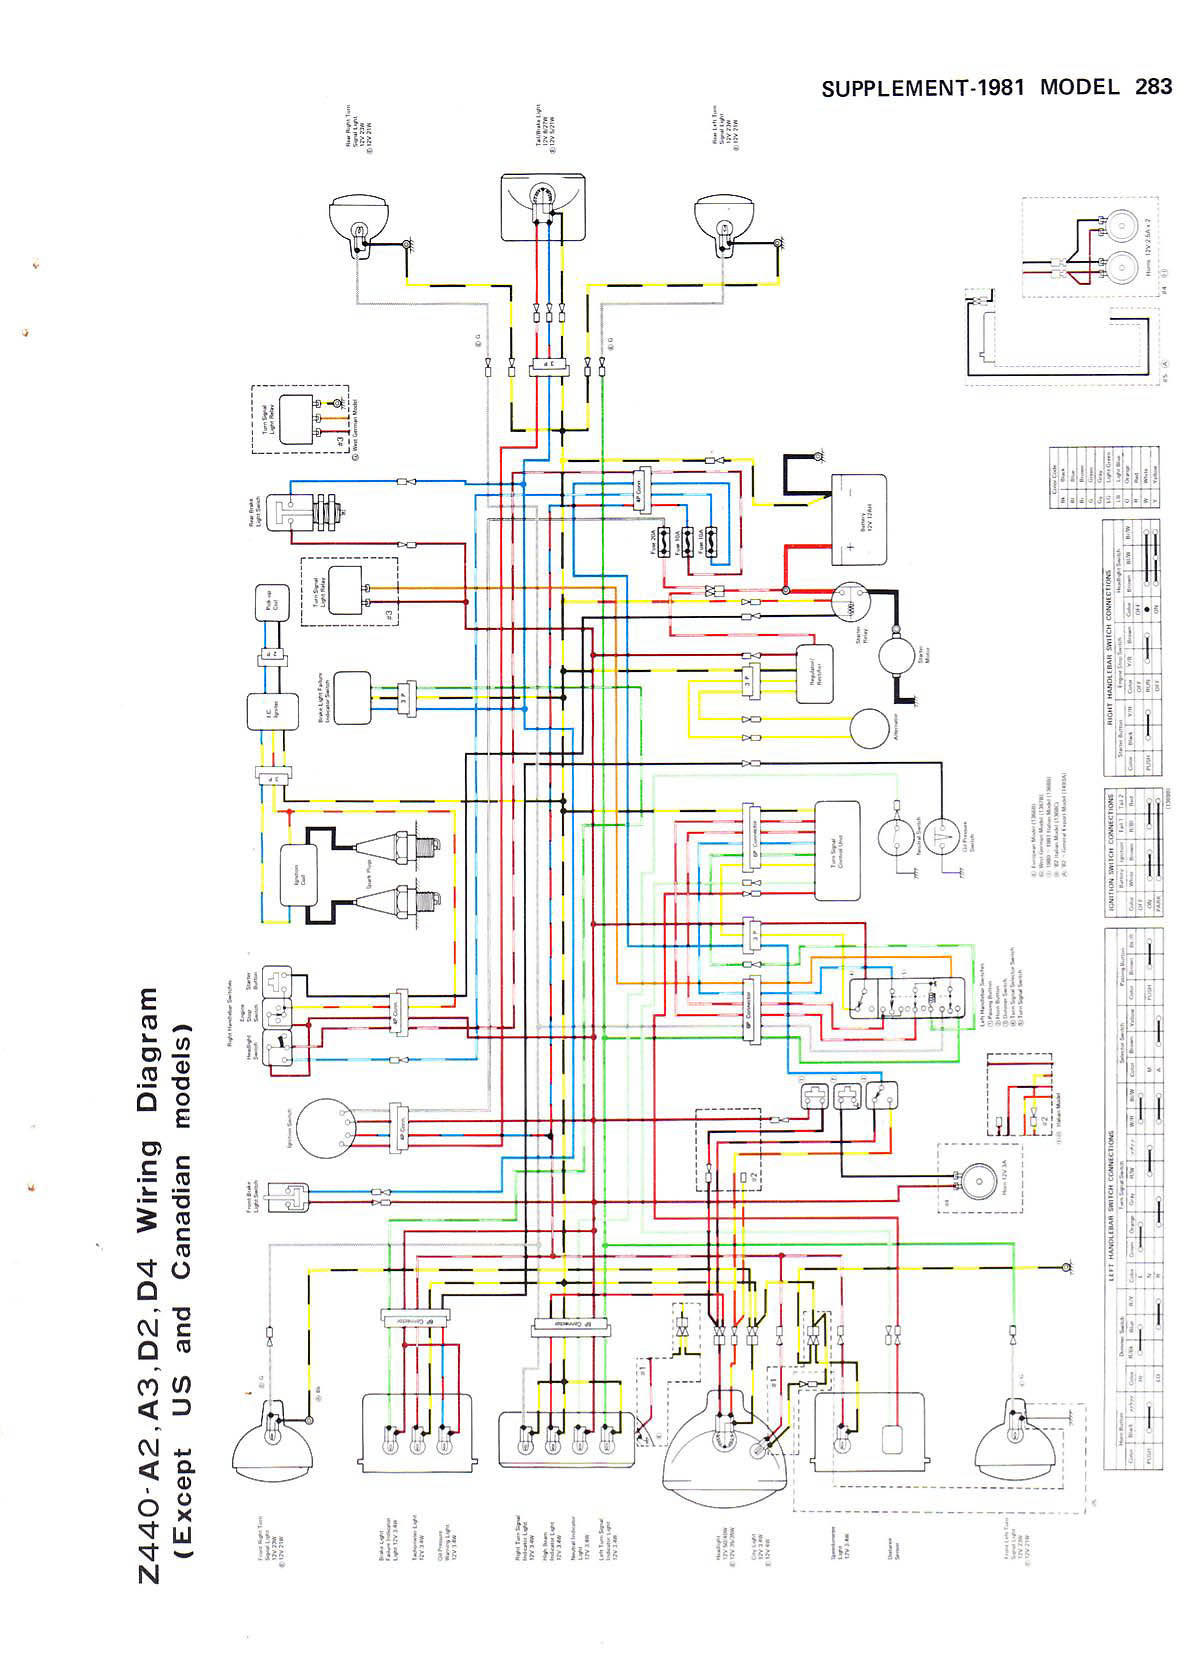 1980 Kz440 Wiring Diagram Schematic List Of Circuit Kz1000 Color Just Data Rh Ag Skiphire Co Uk